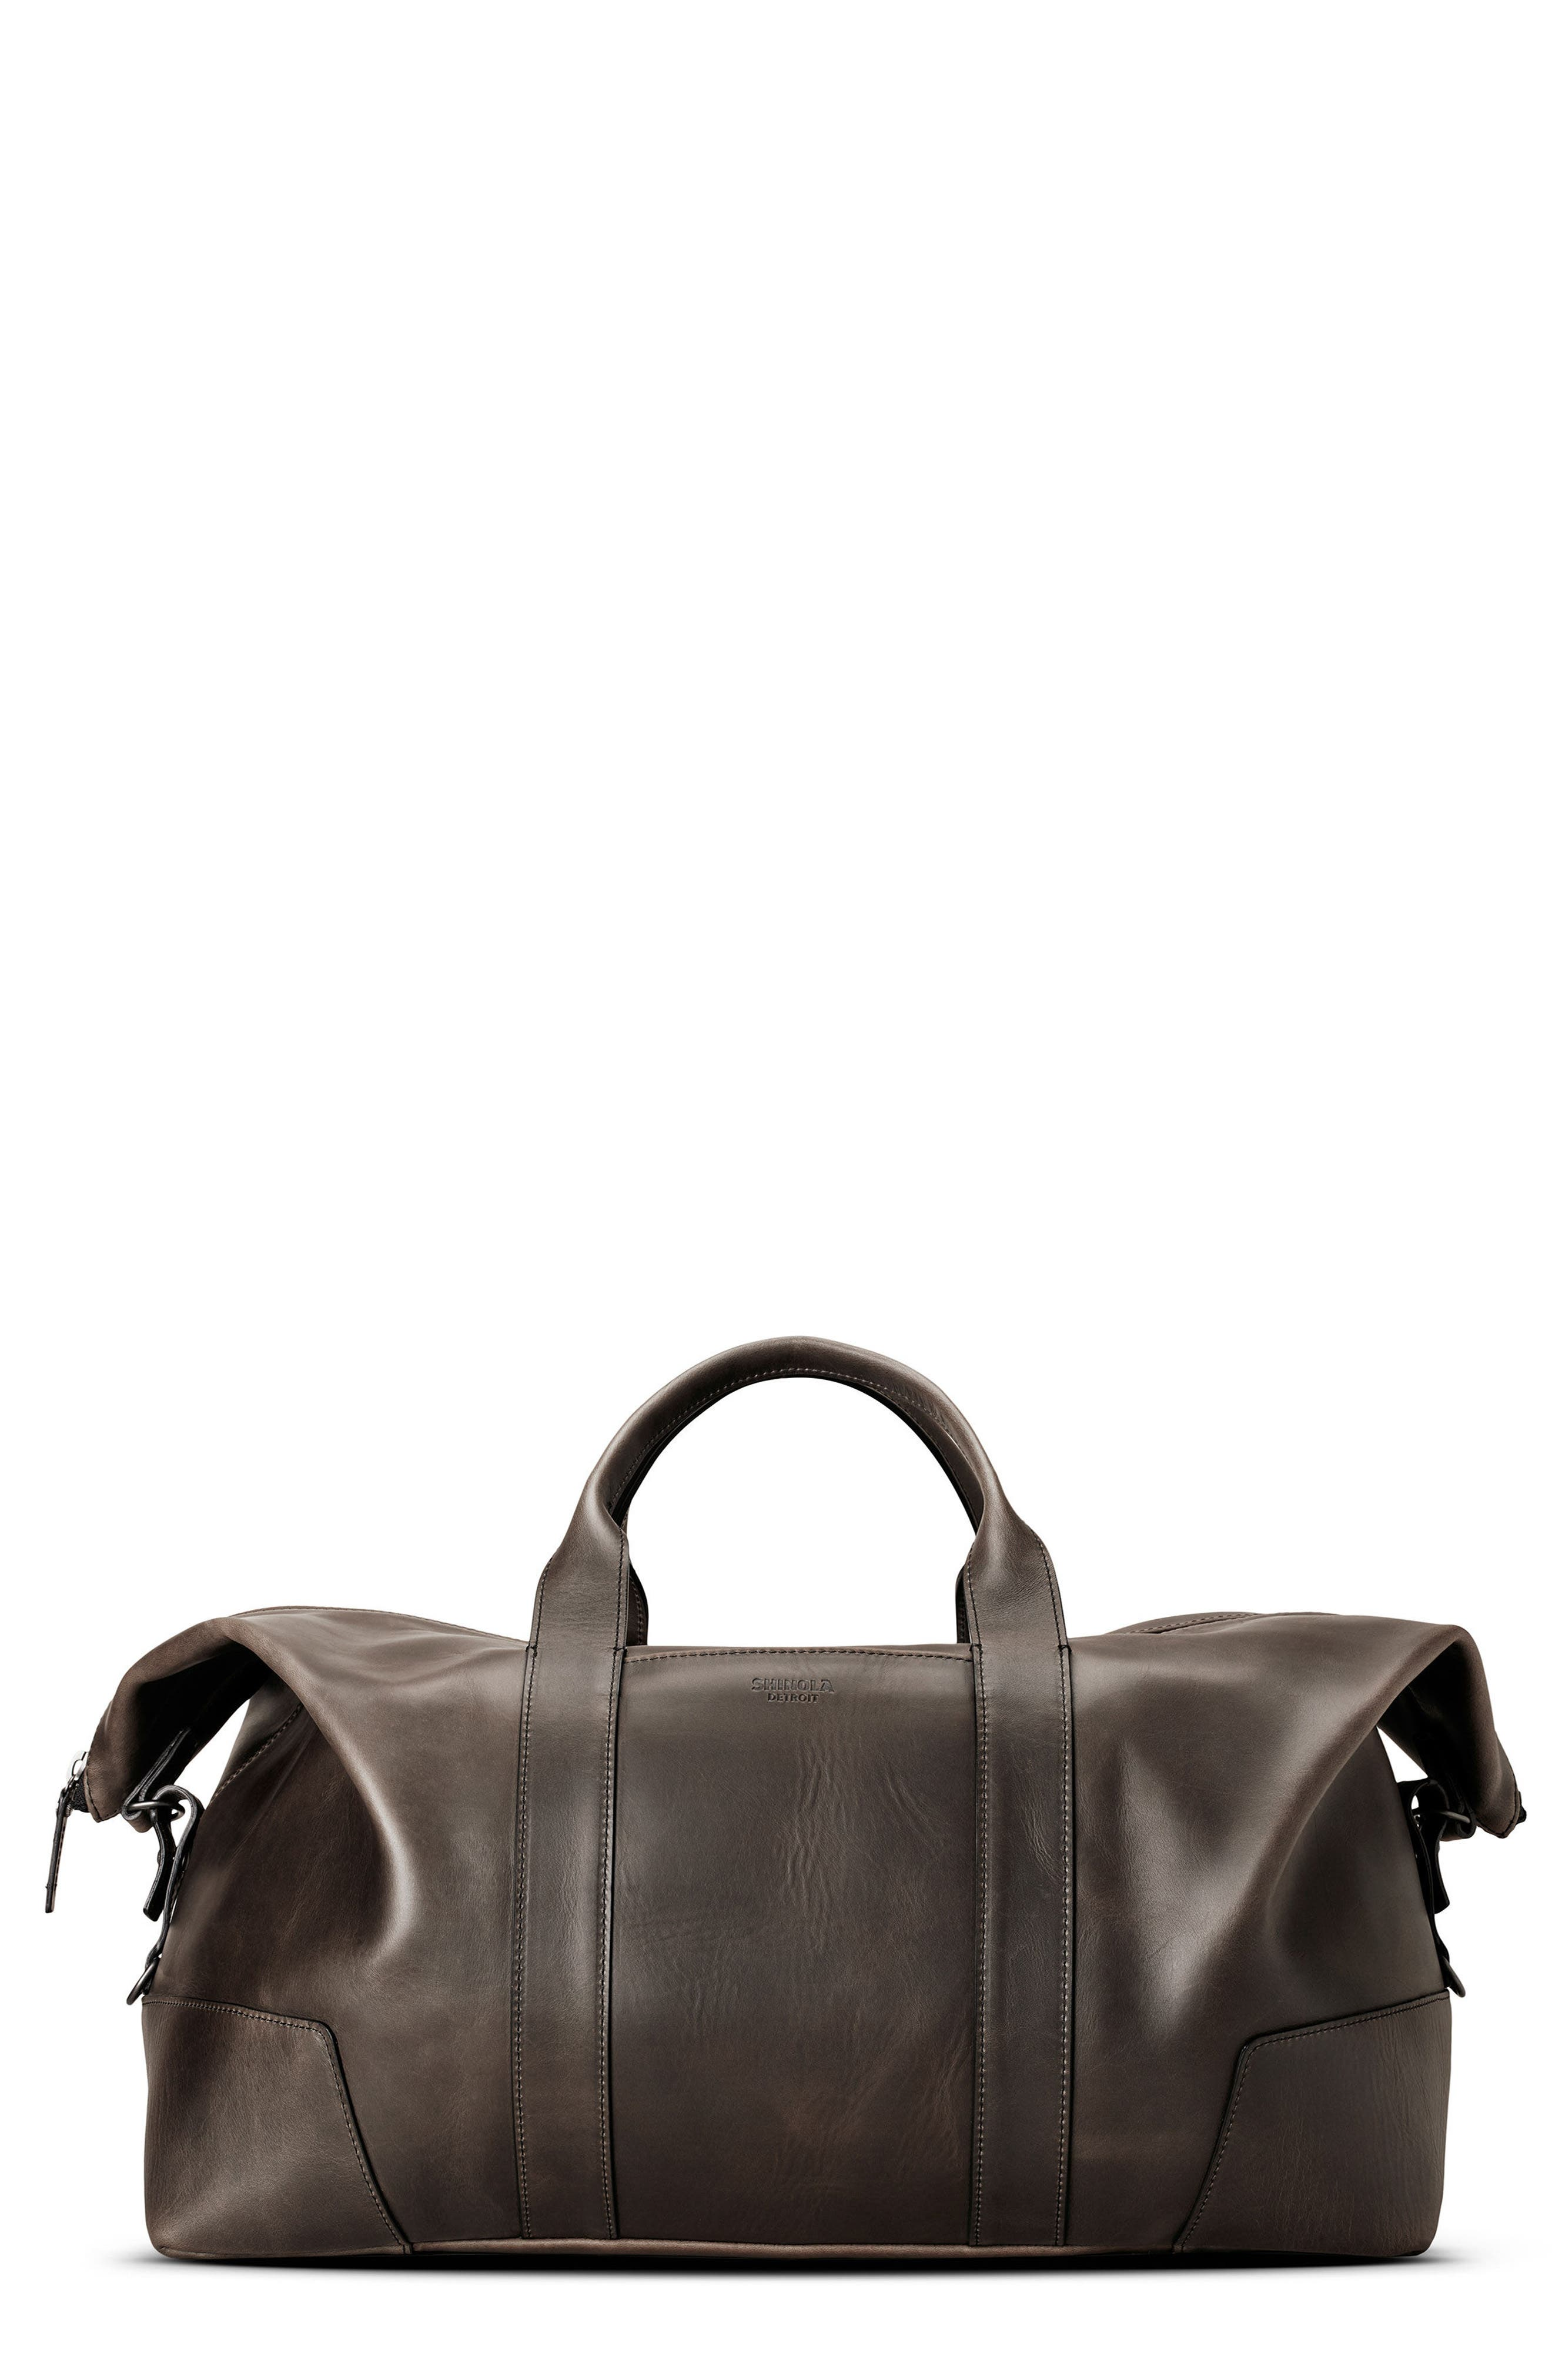 Madone Leather Carryall Bag,                             Main thumbnail 1, color,                             018